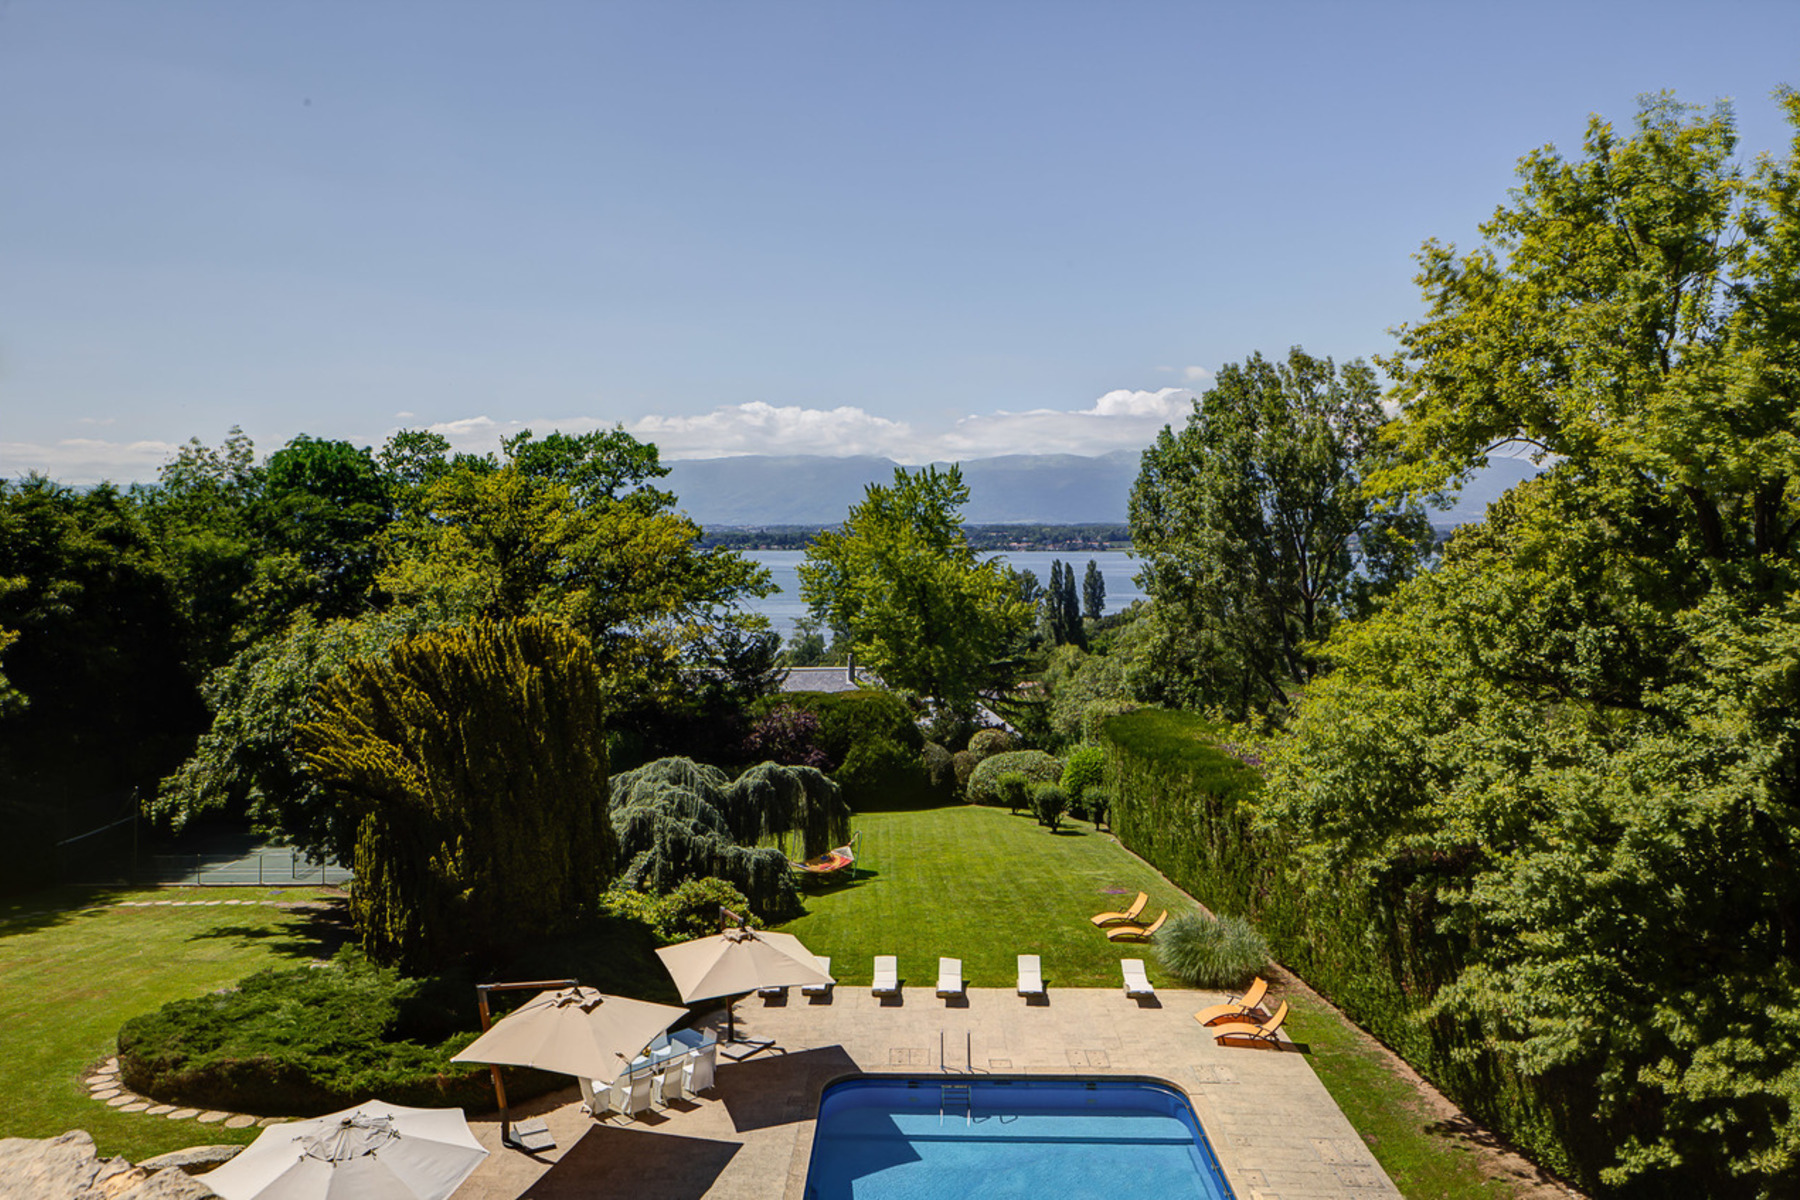 Single Family Home for Active at Superb property with view over the lake Vésenaz Vesenaz, Geneva 1222 Switzerland